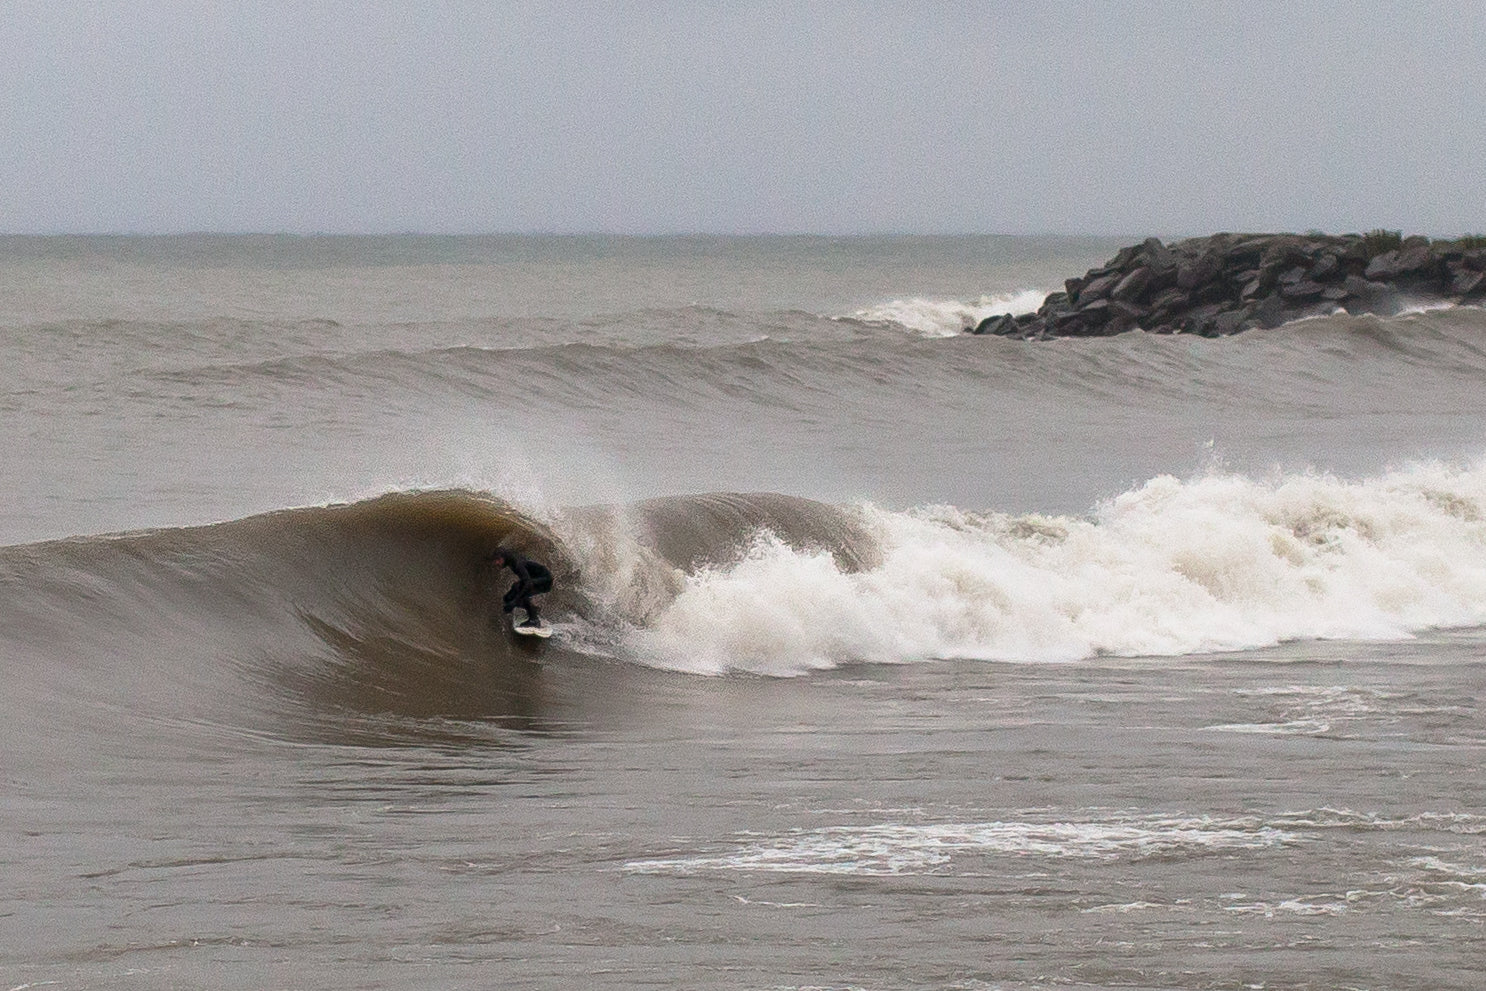 Surfing on Lake Ontario Surf the Greats Great Lakes Barrel by Lucas Murnaghan